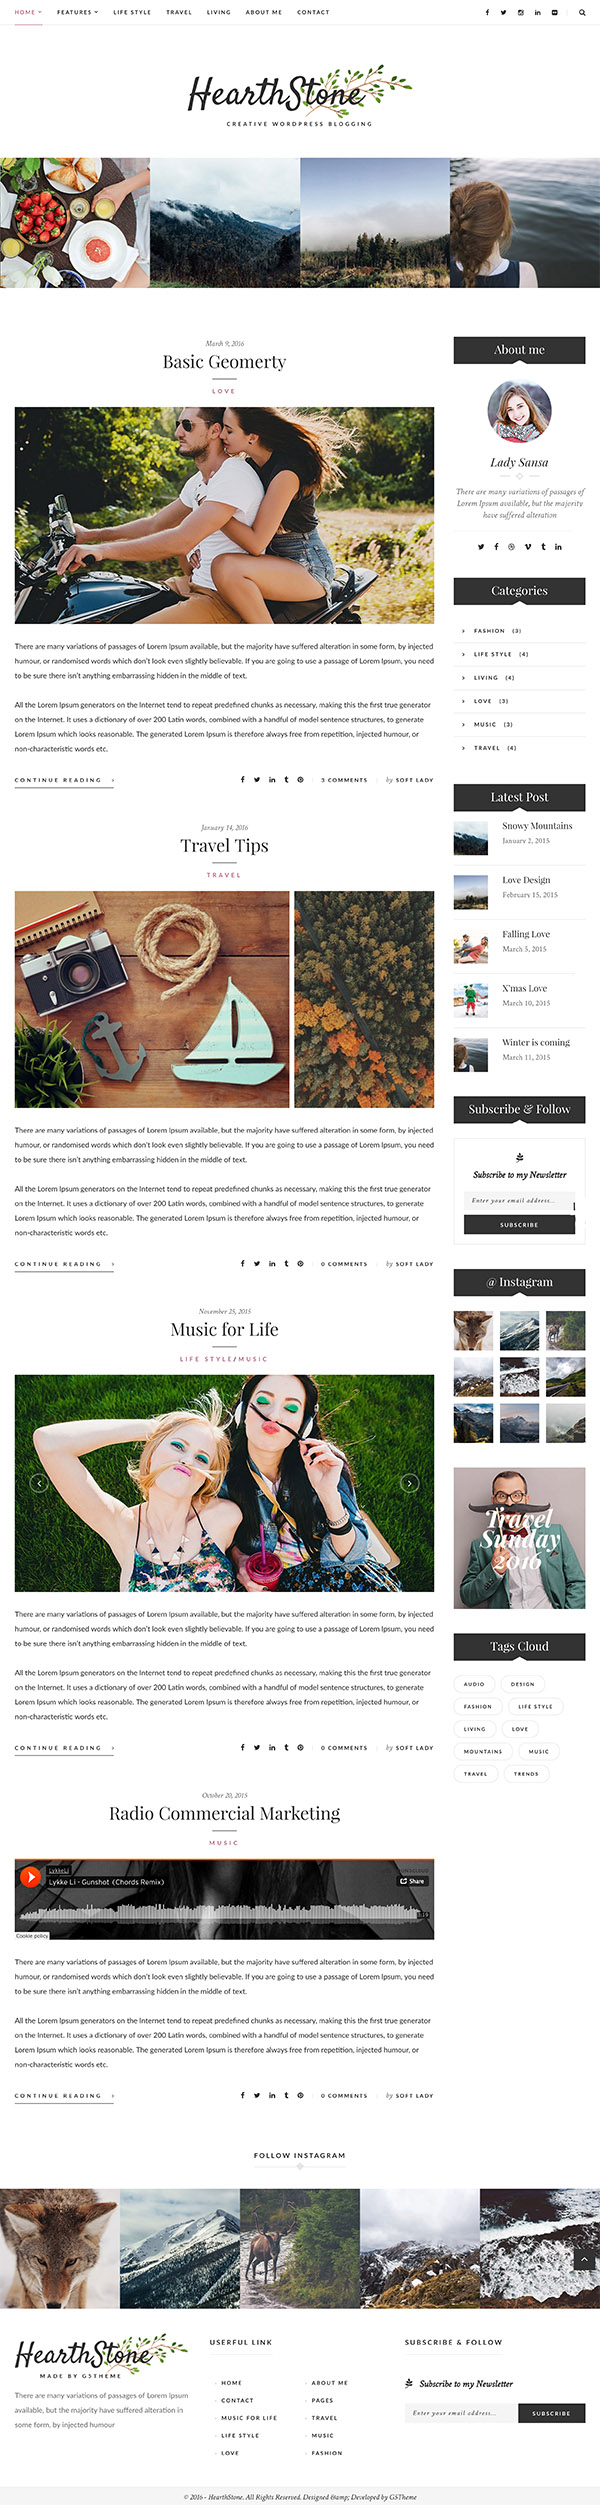 11 HearthStone - Responsive WordPress Blog Theme